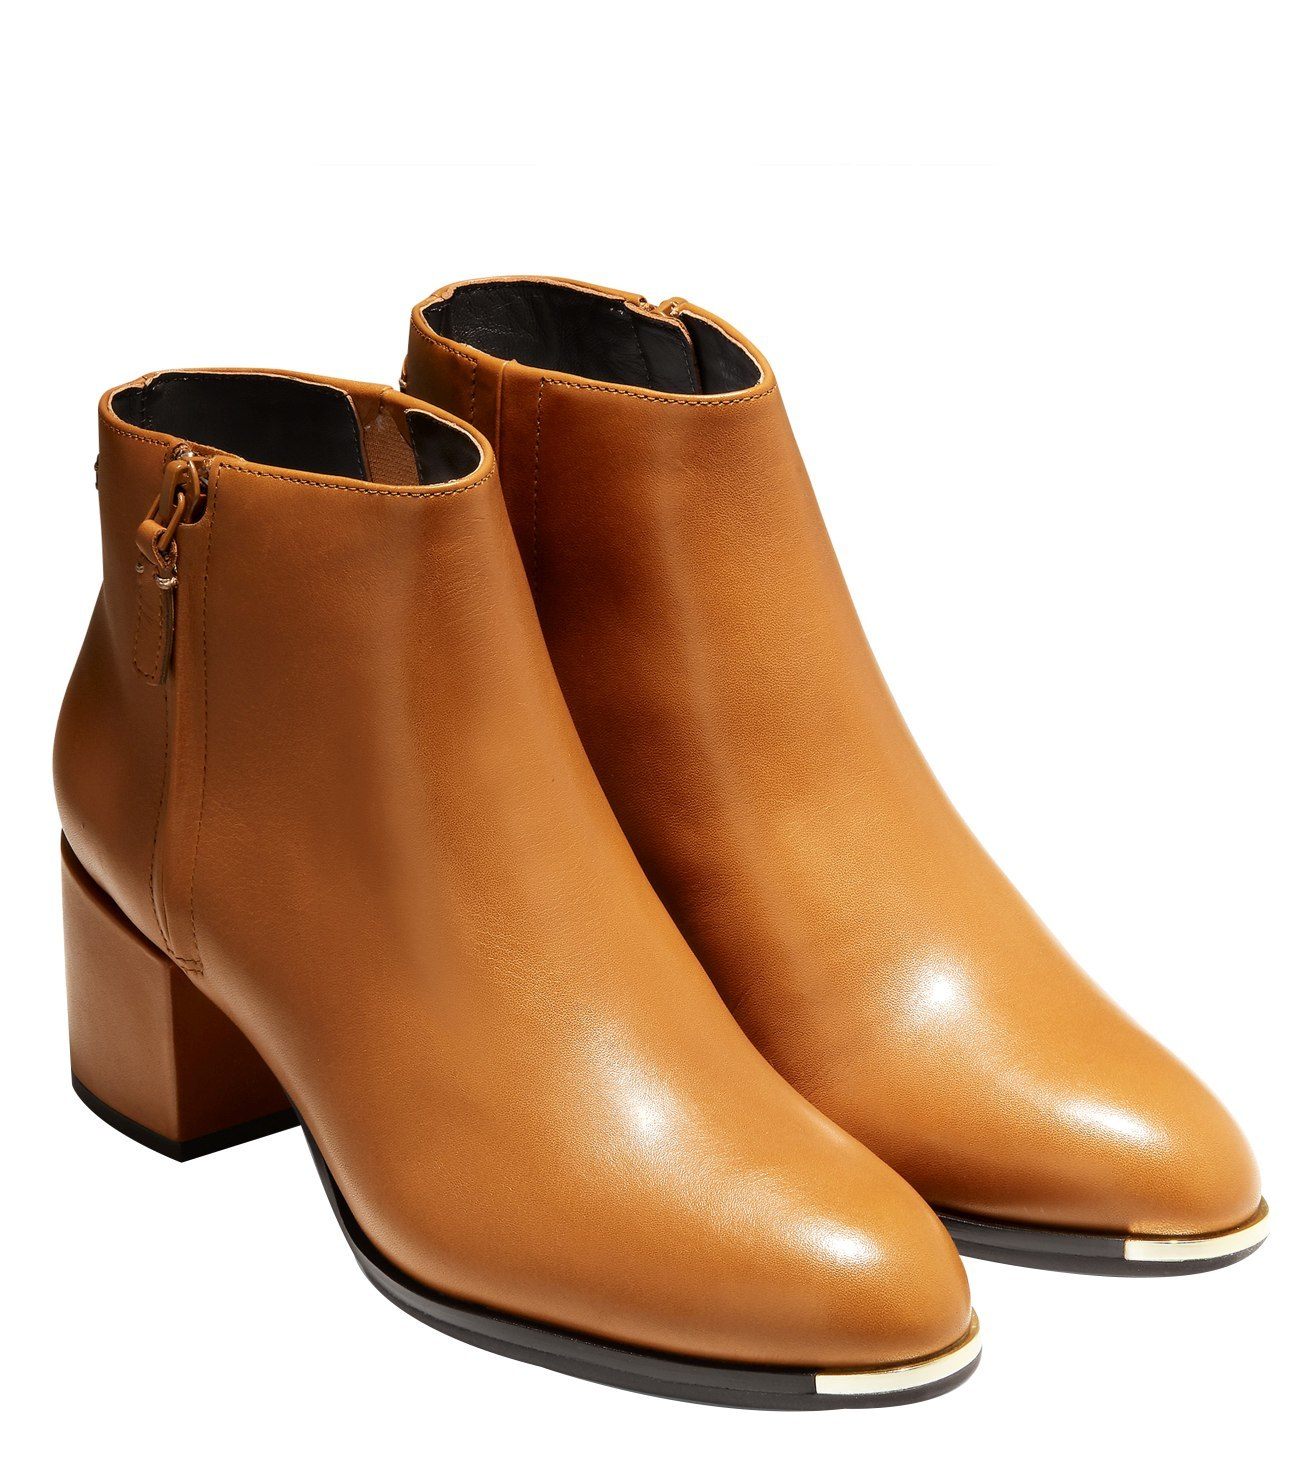 Buy Cole Haan Tan Grand Ambition 55 mm